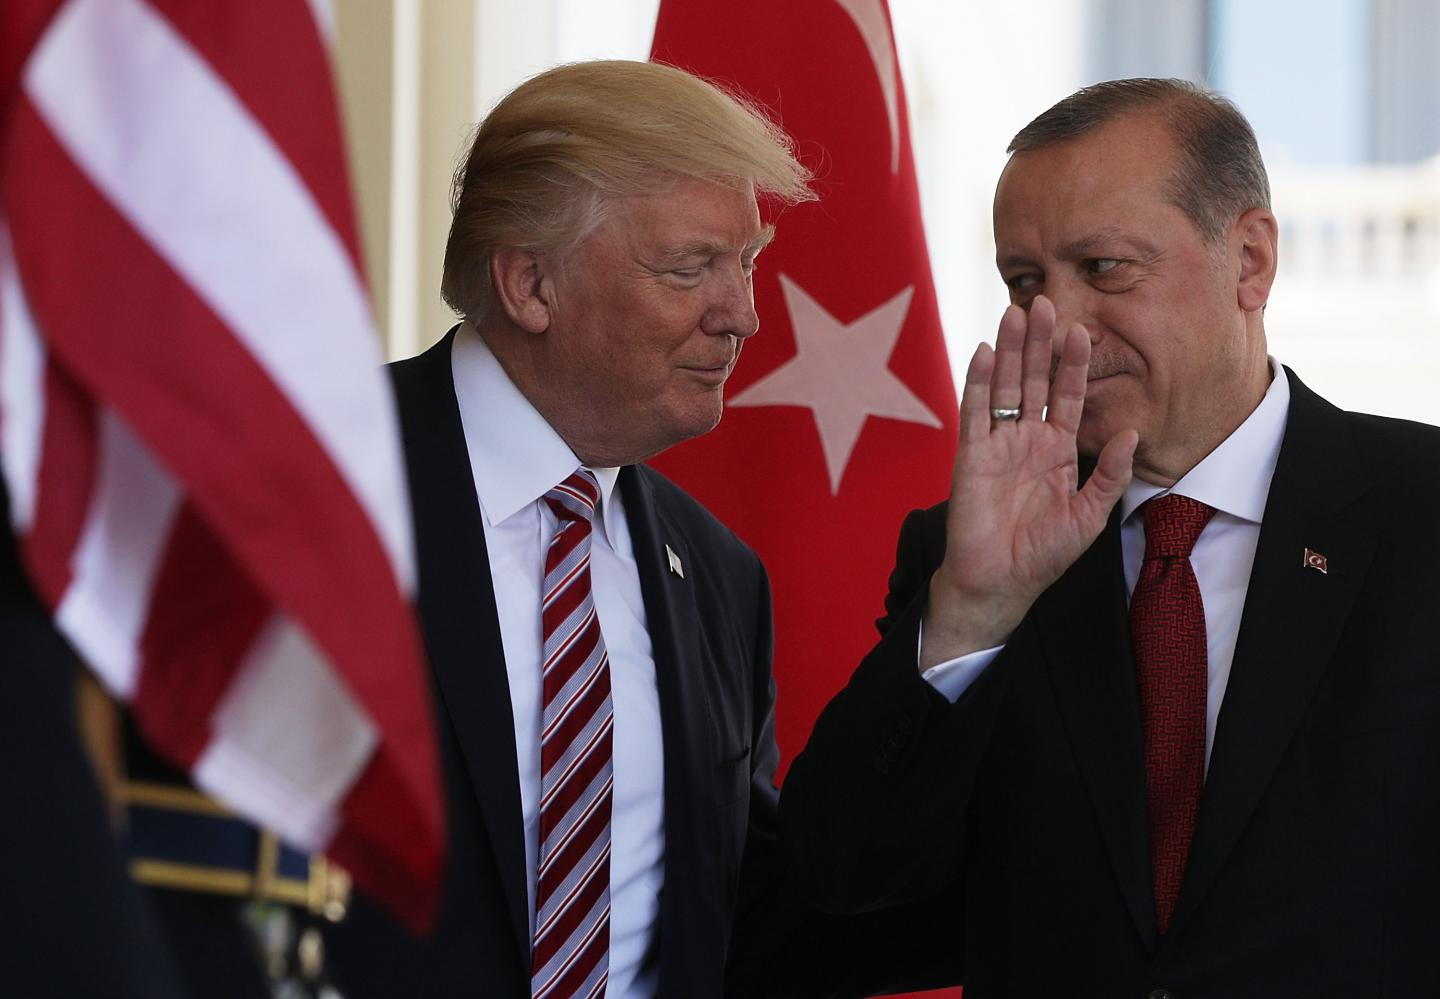 Erdogan and Trump's phone conversation on Khashoggi, Brunson and terrorism